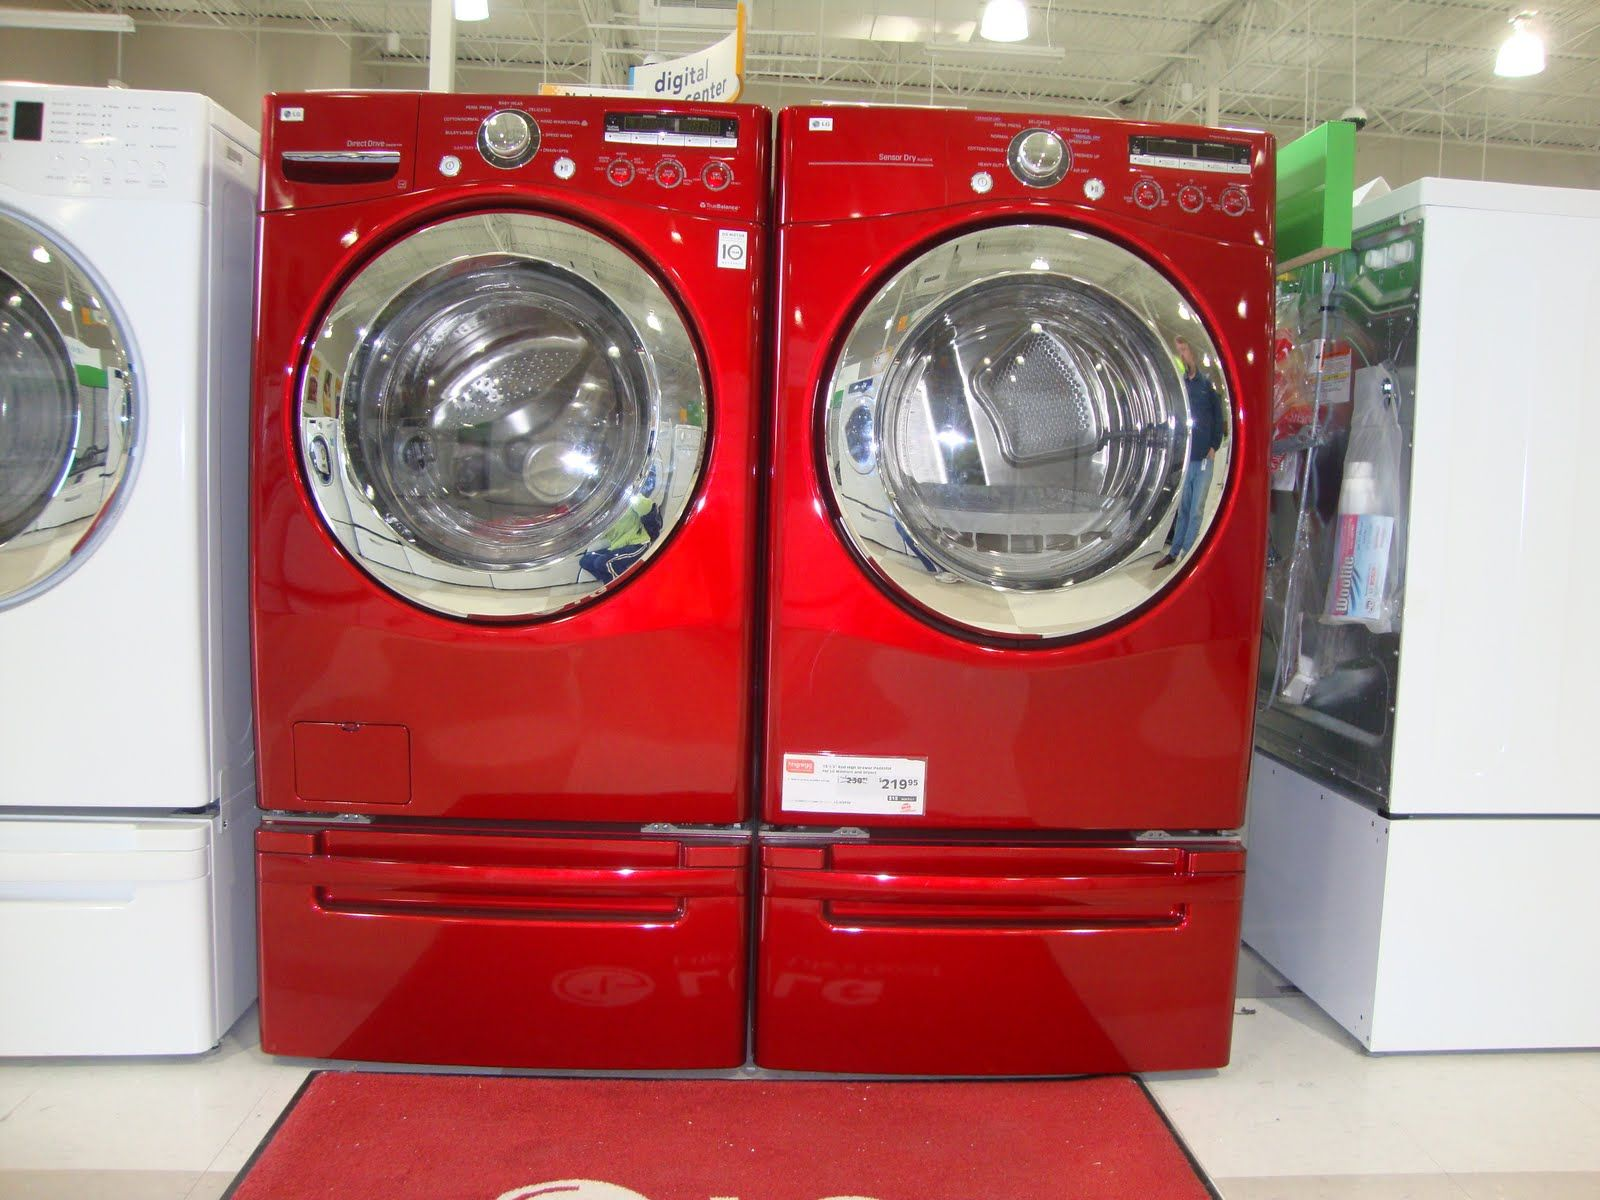 Colored Kitchen And Laundry Appliances Laundry Room Storage Shelves Red Washer And Dryer Laundry Room Storage